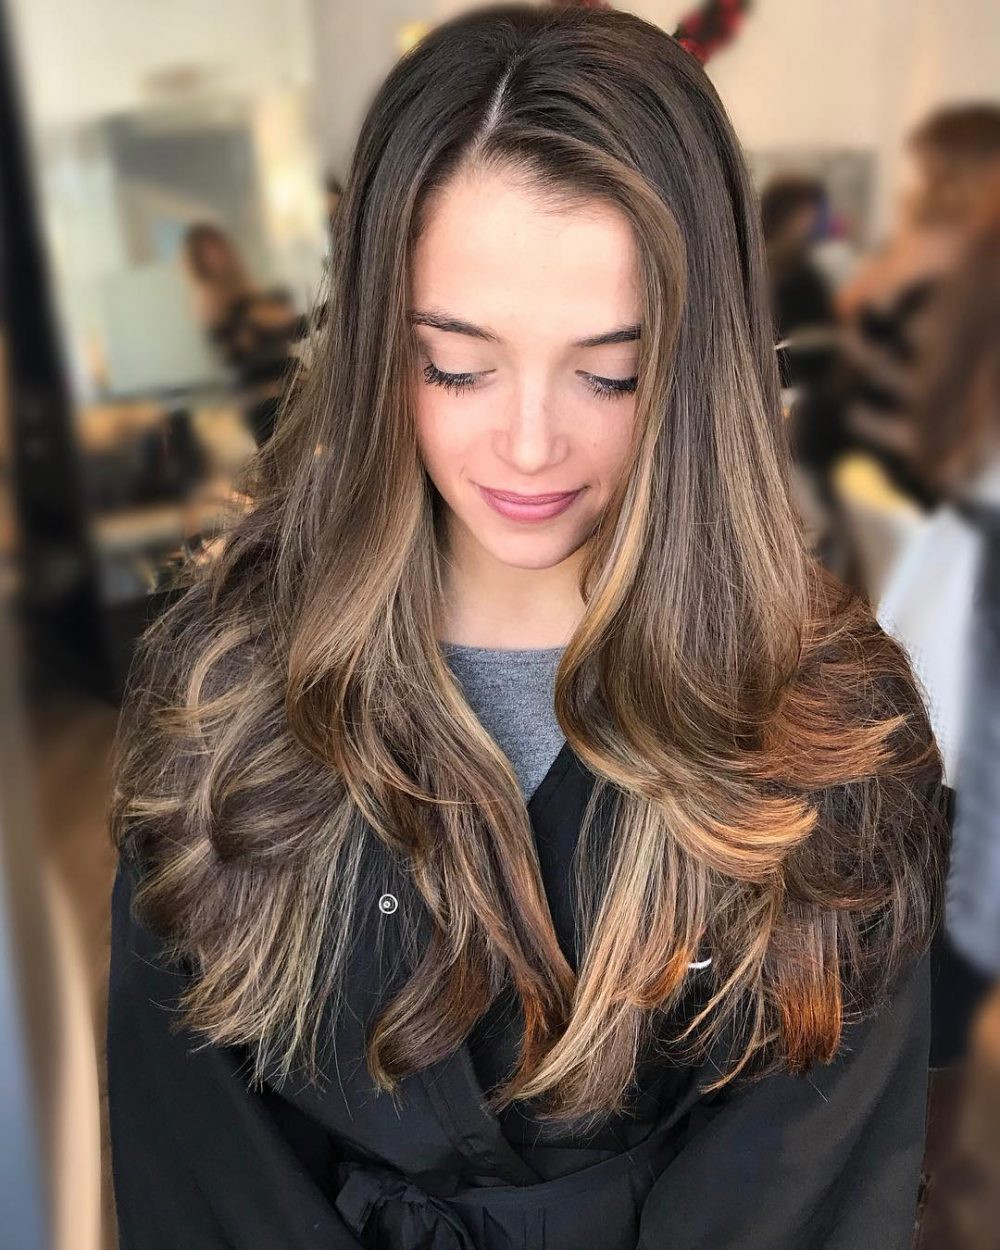 Haircuts With Layers For Long Hair  31 Fabulous Hairstyles for Long Straight Hair Trending in